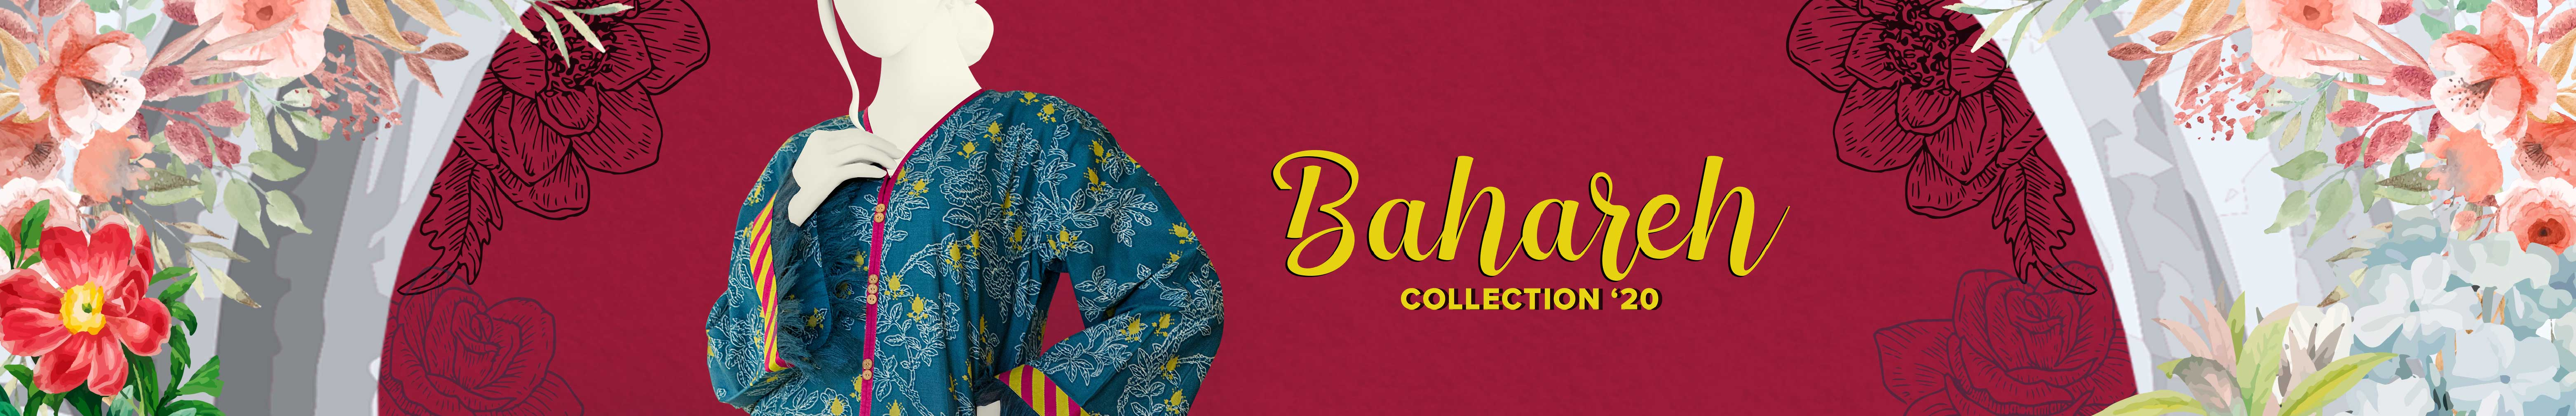 Bahareh Collection